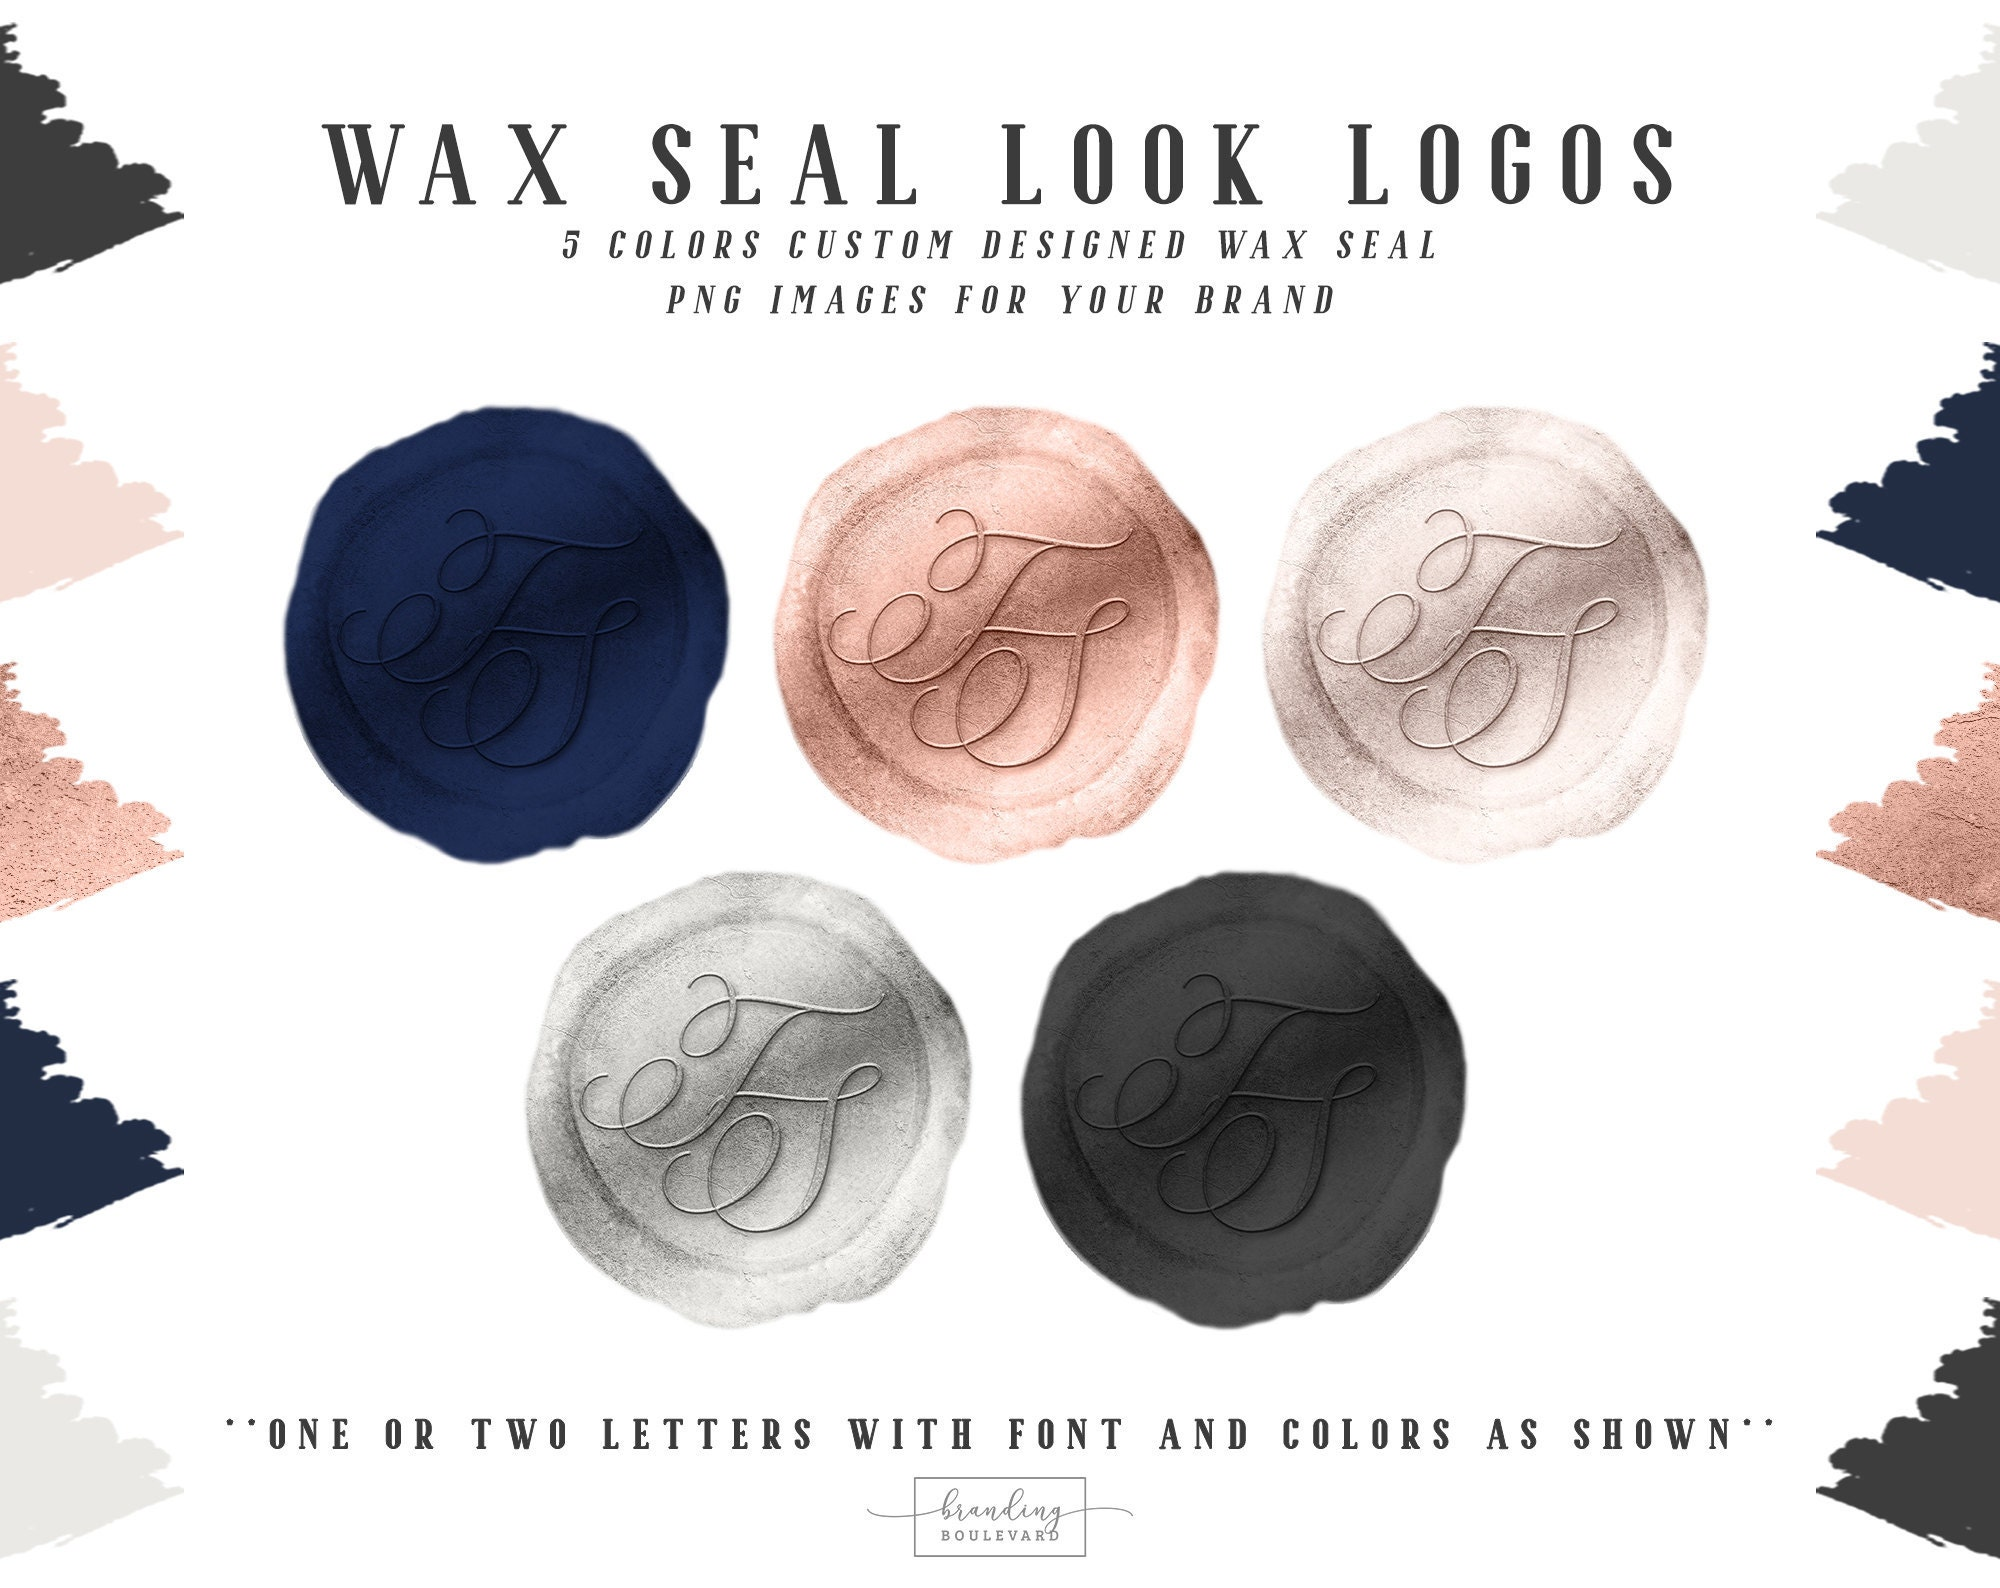 Wax Seal Look Logos Custom Made with Your Initials in 5 Colors - Navy Blue, Rose Gold, Silver Gray, Dark Gray, and Blush Pink